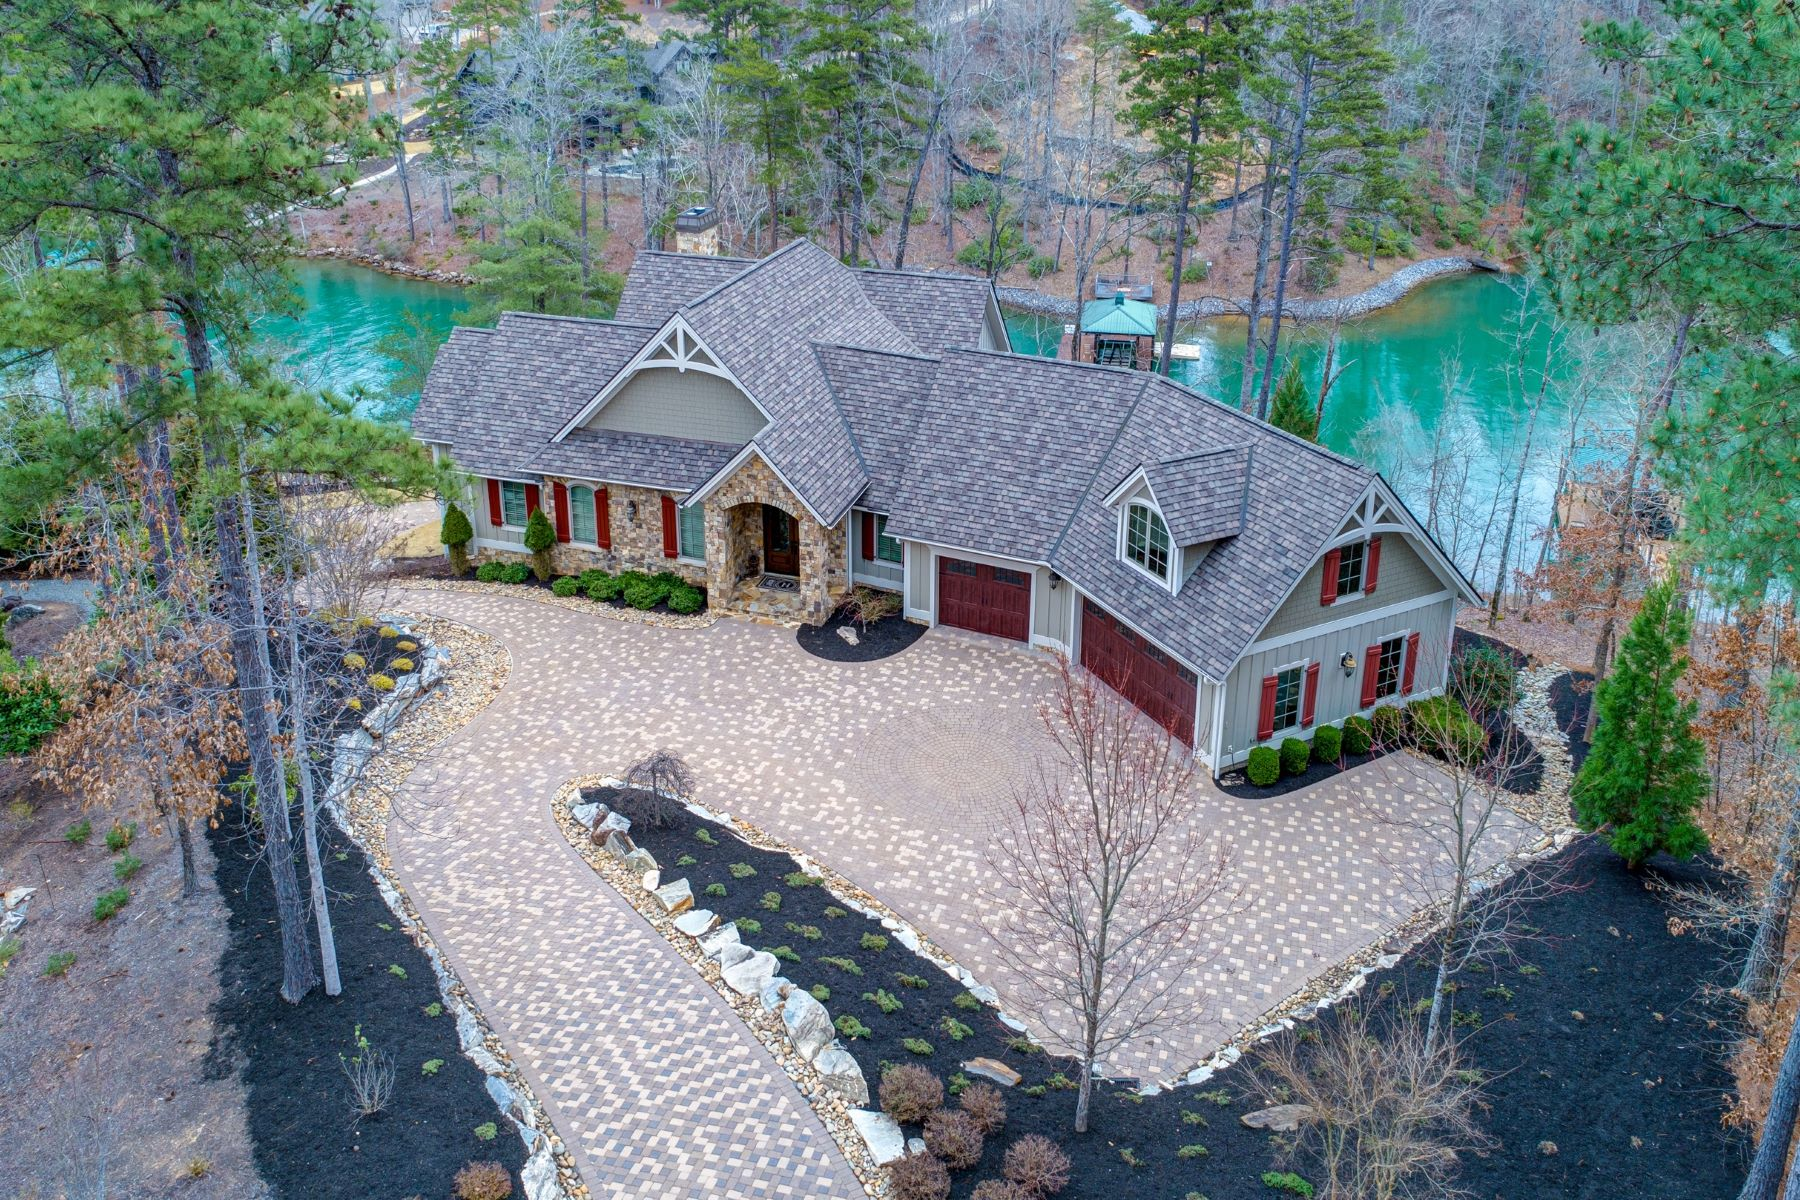 Single Family Homes for Active at Mesmerizing Views 115 Mossy Way Six Mile, South Carolina 29682 United States